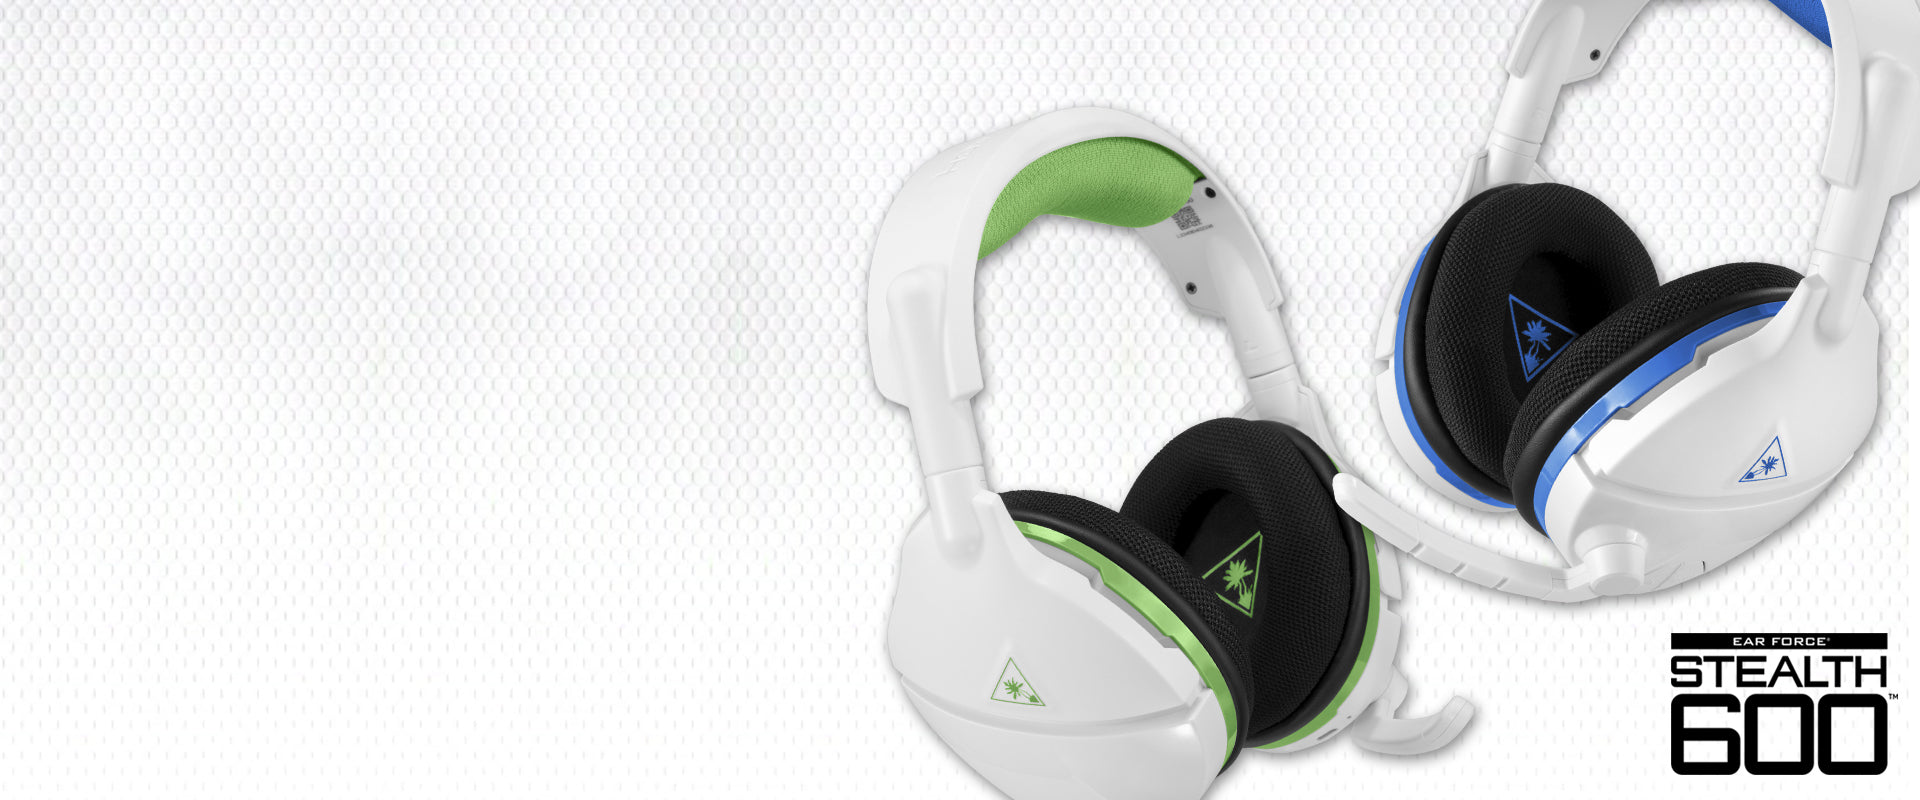 d1b50bbe121 Turtle Beach®  1 Gaming Headsets - Hear Everything. Defeat Everyone.